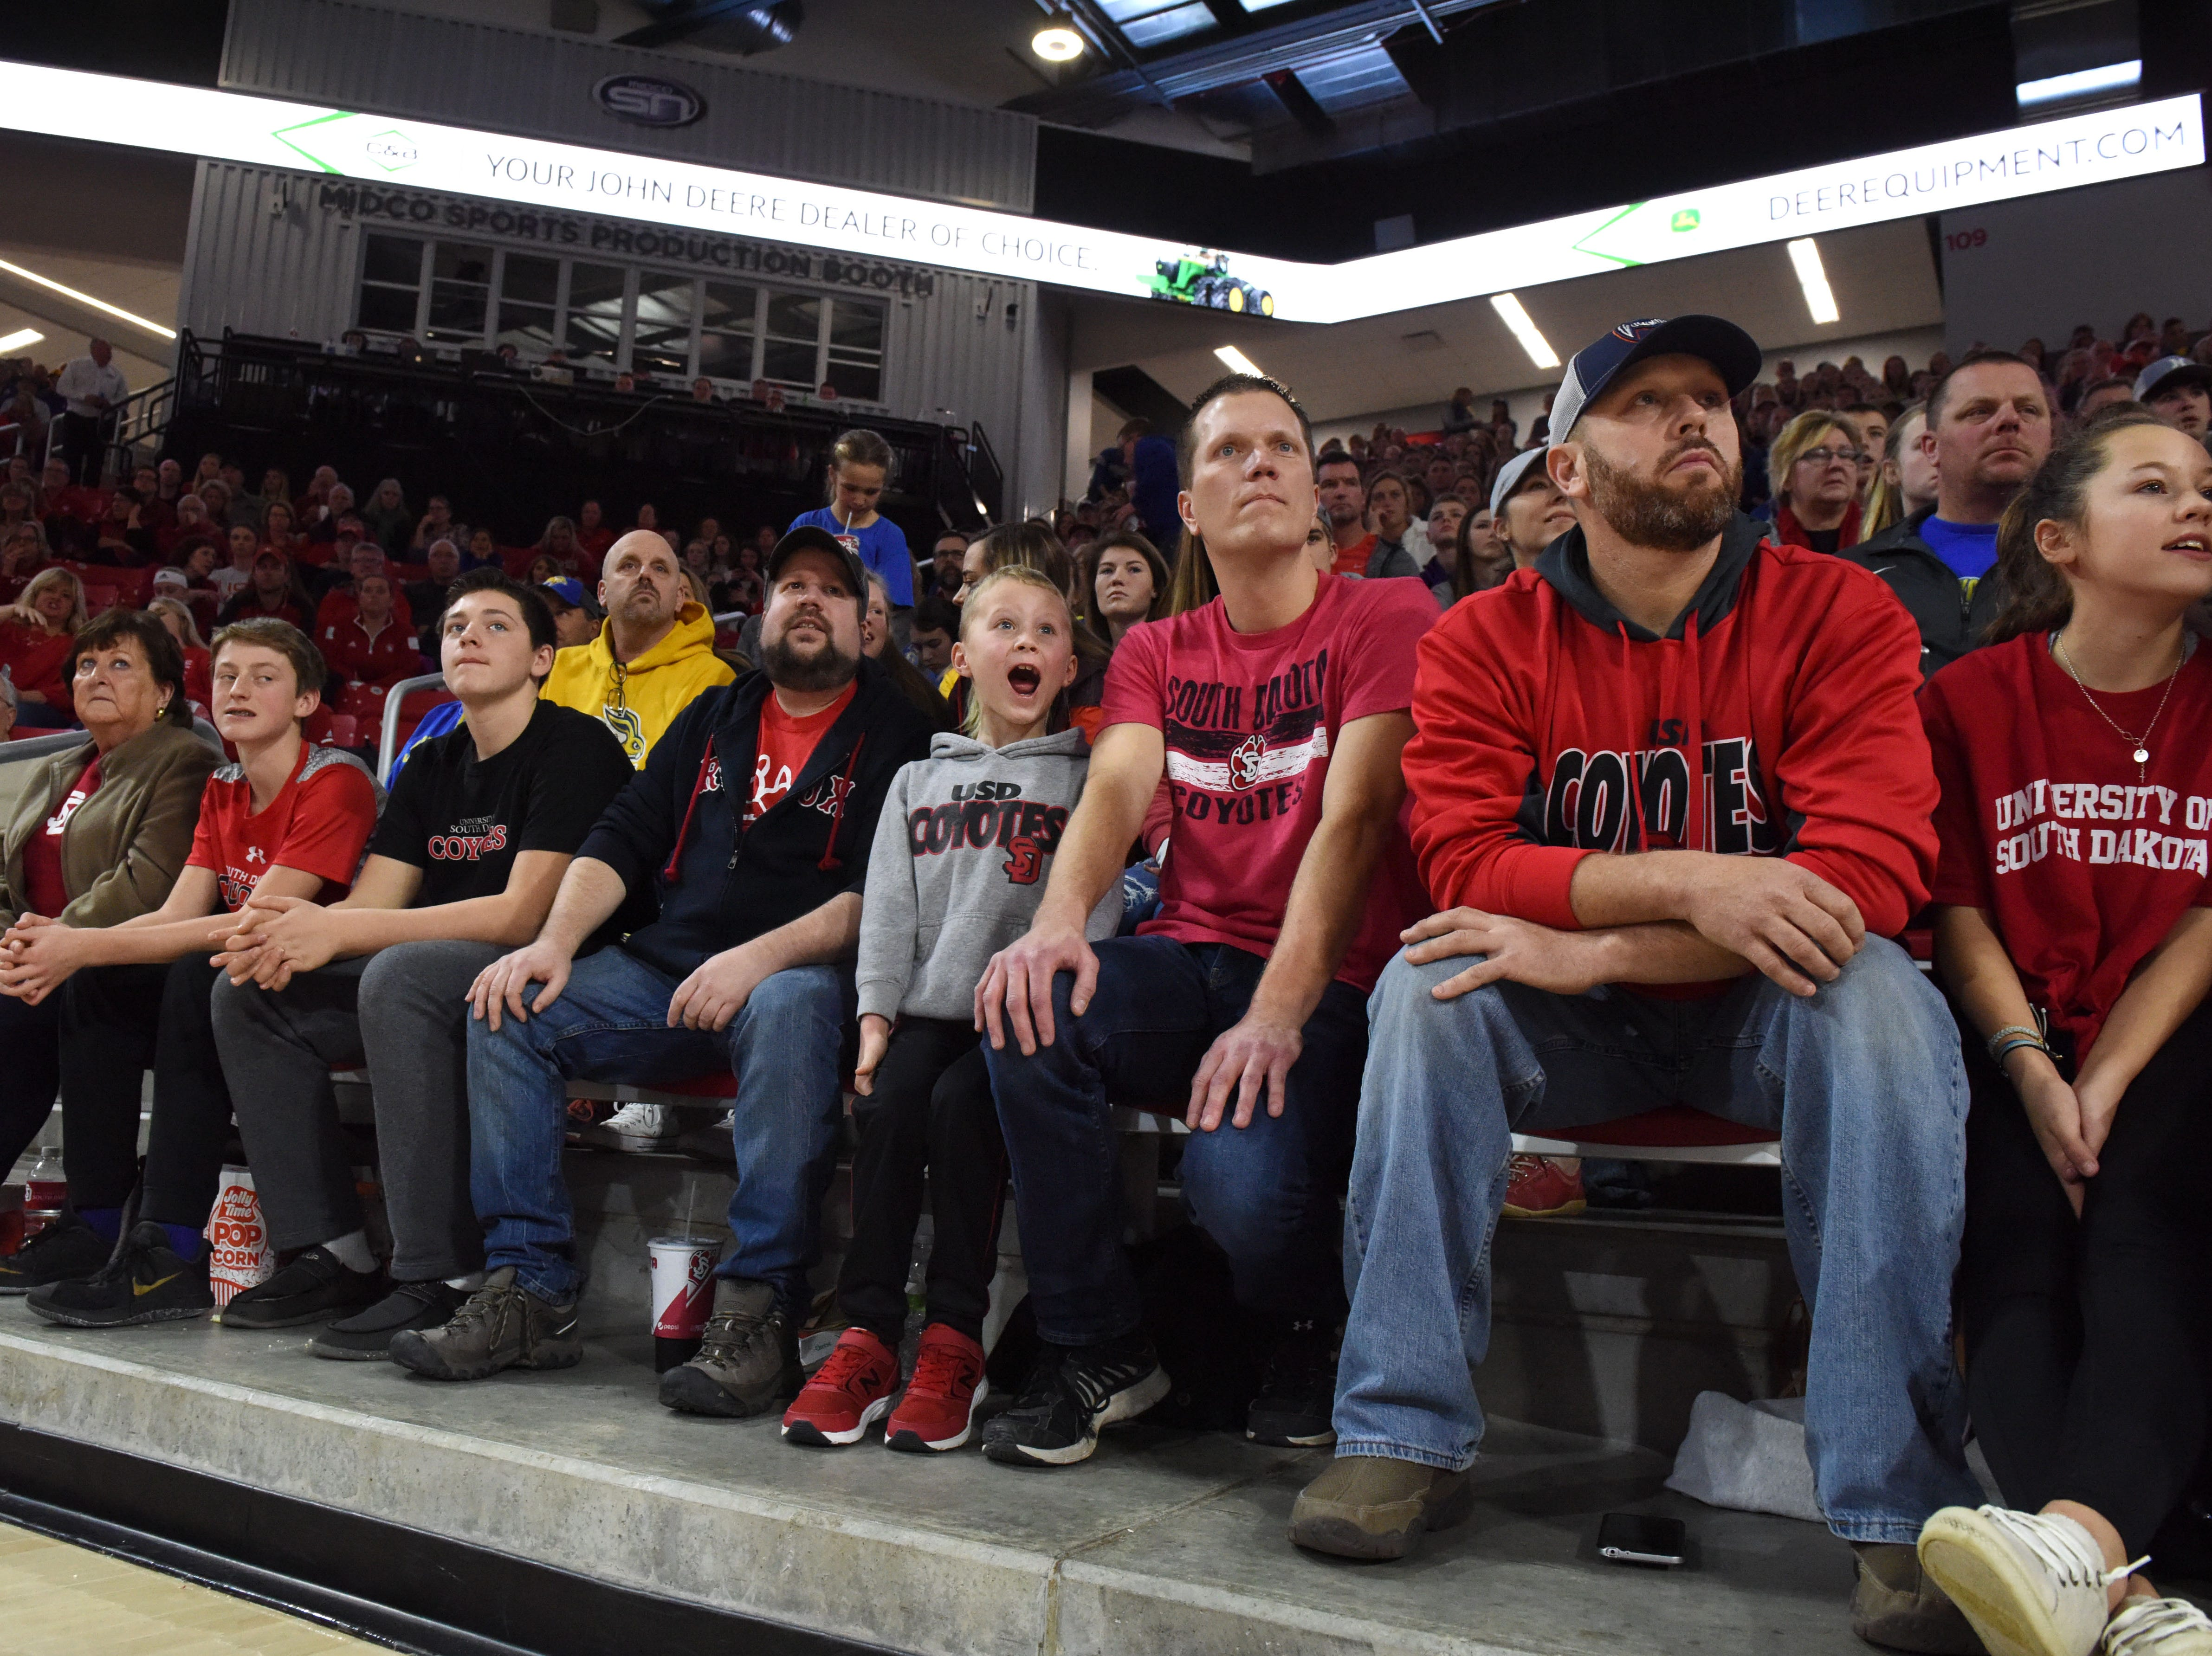 Audience members react during the SDSU and USD game, Sunday, Jan. 6, 2019 in Vermillion, S.D.